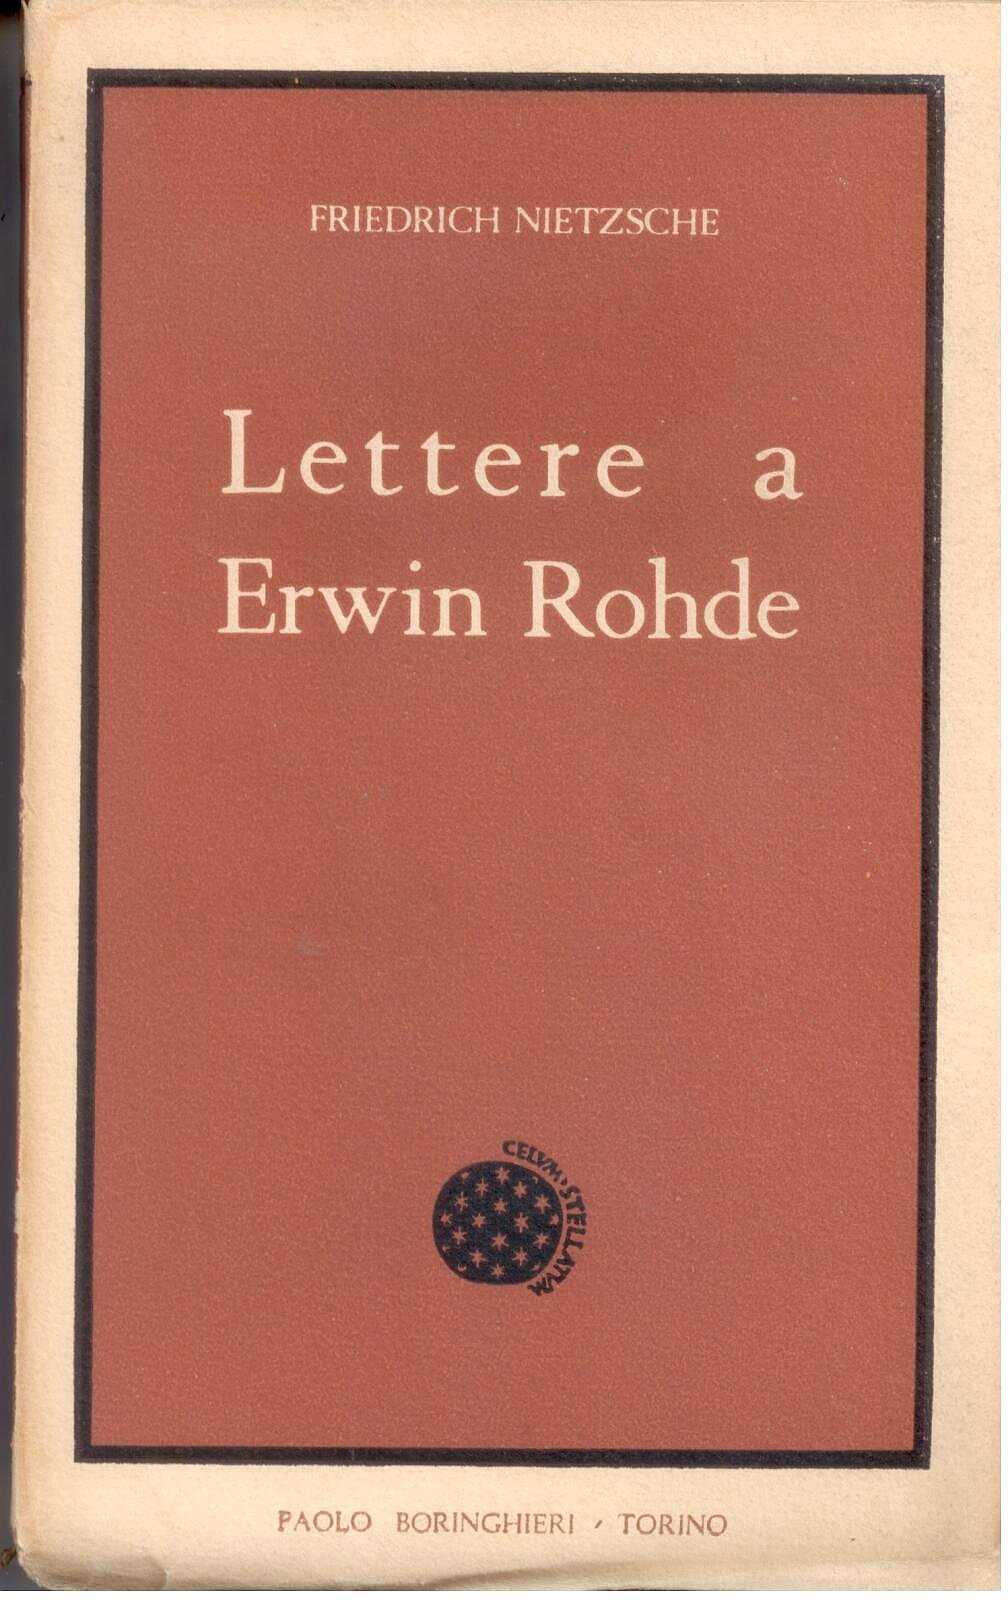 Lettere a Erwin Rohde